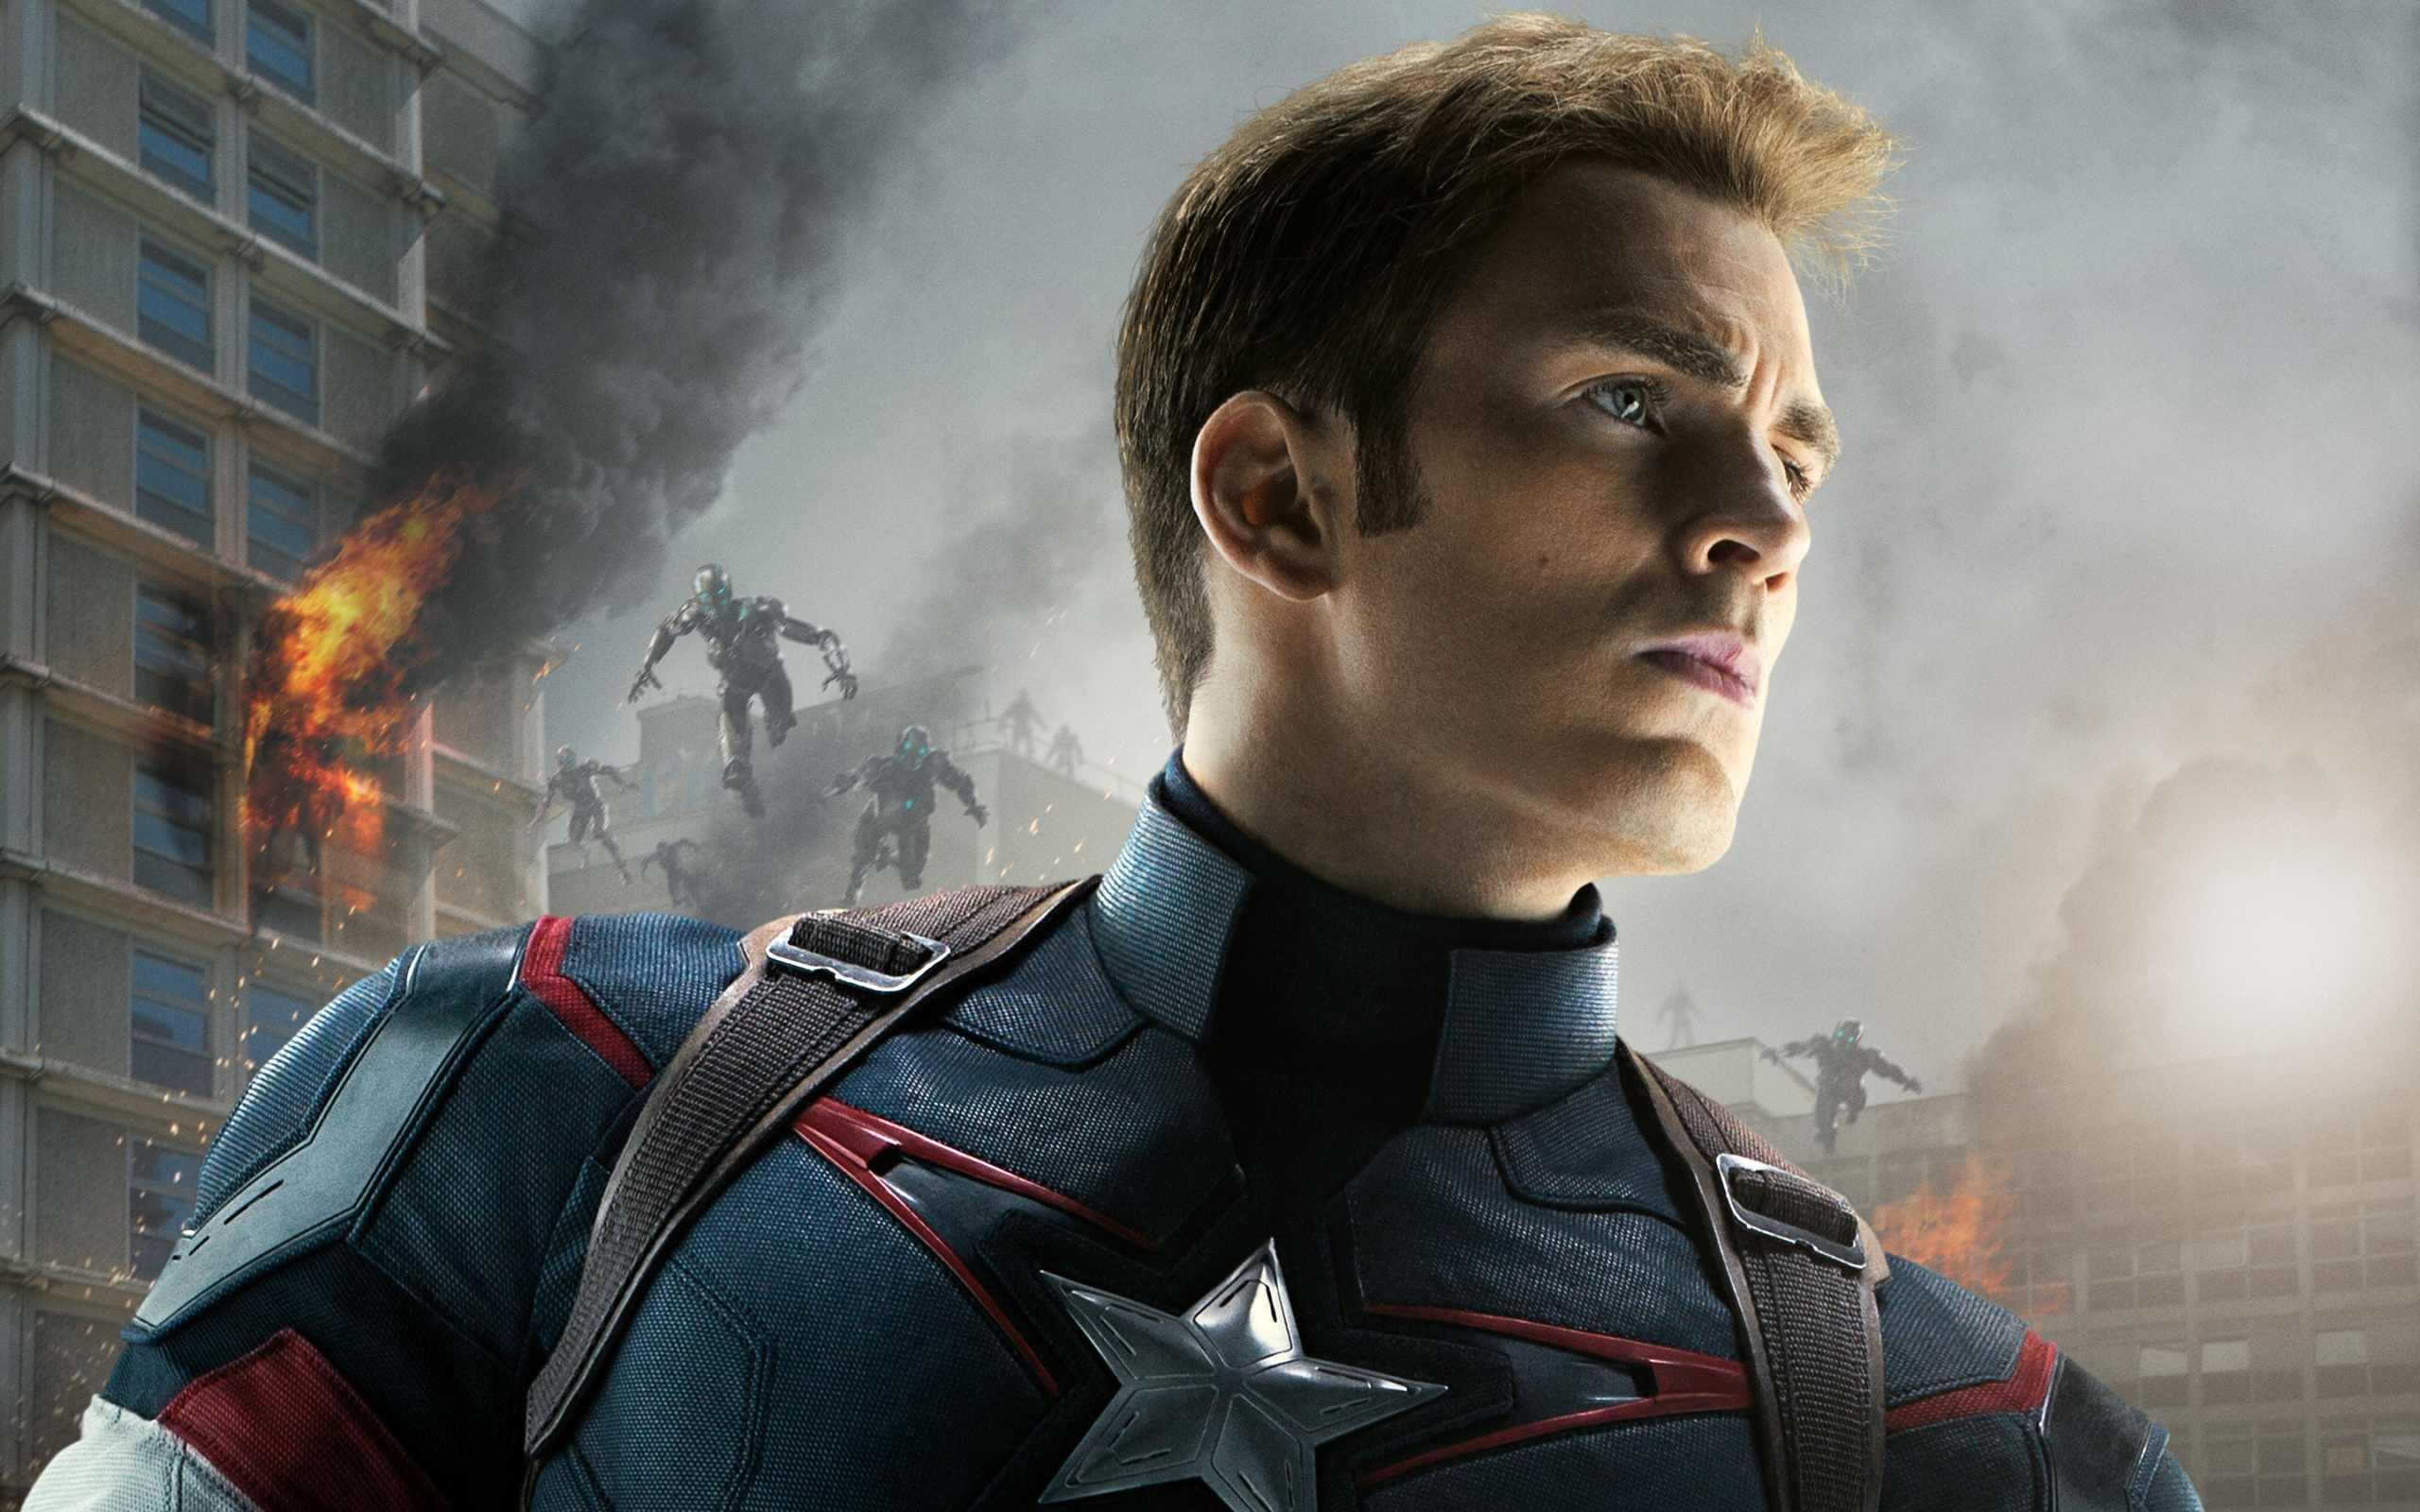 Captain America Avengers Age Of Ultron Wallpapers In Jpg Format For